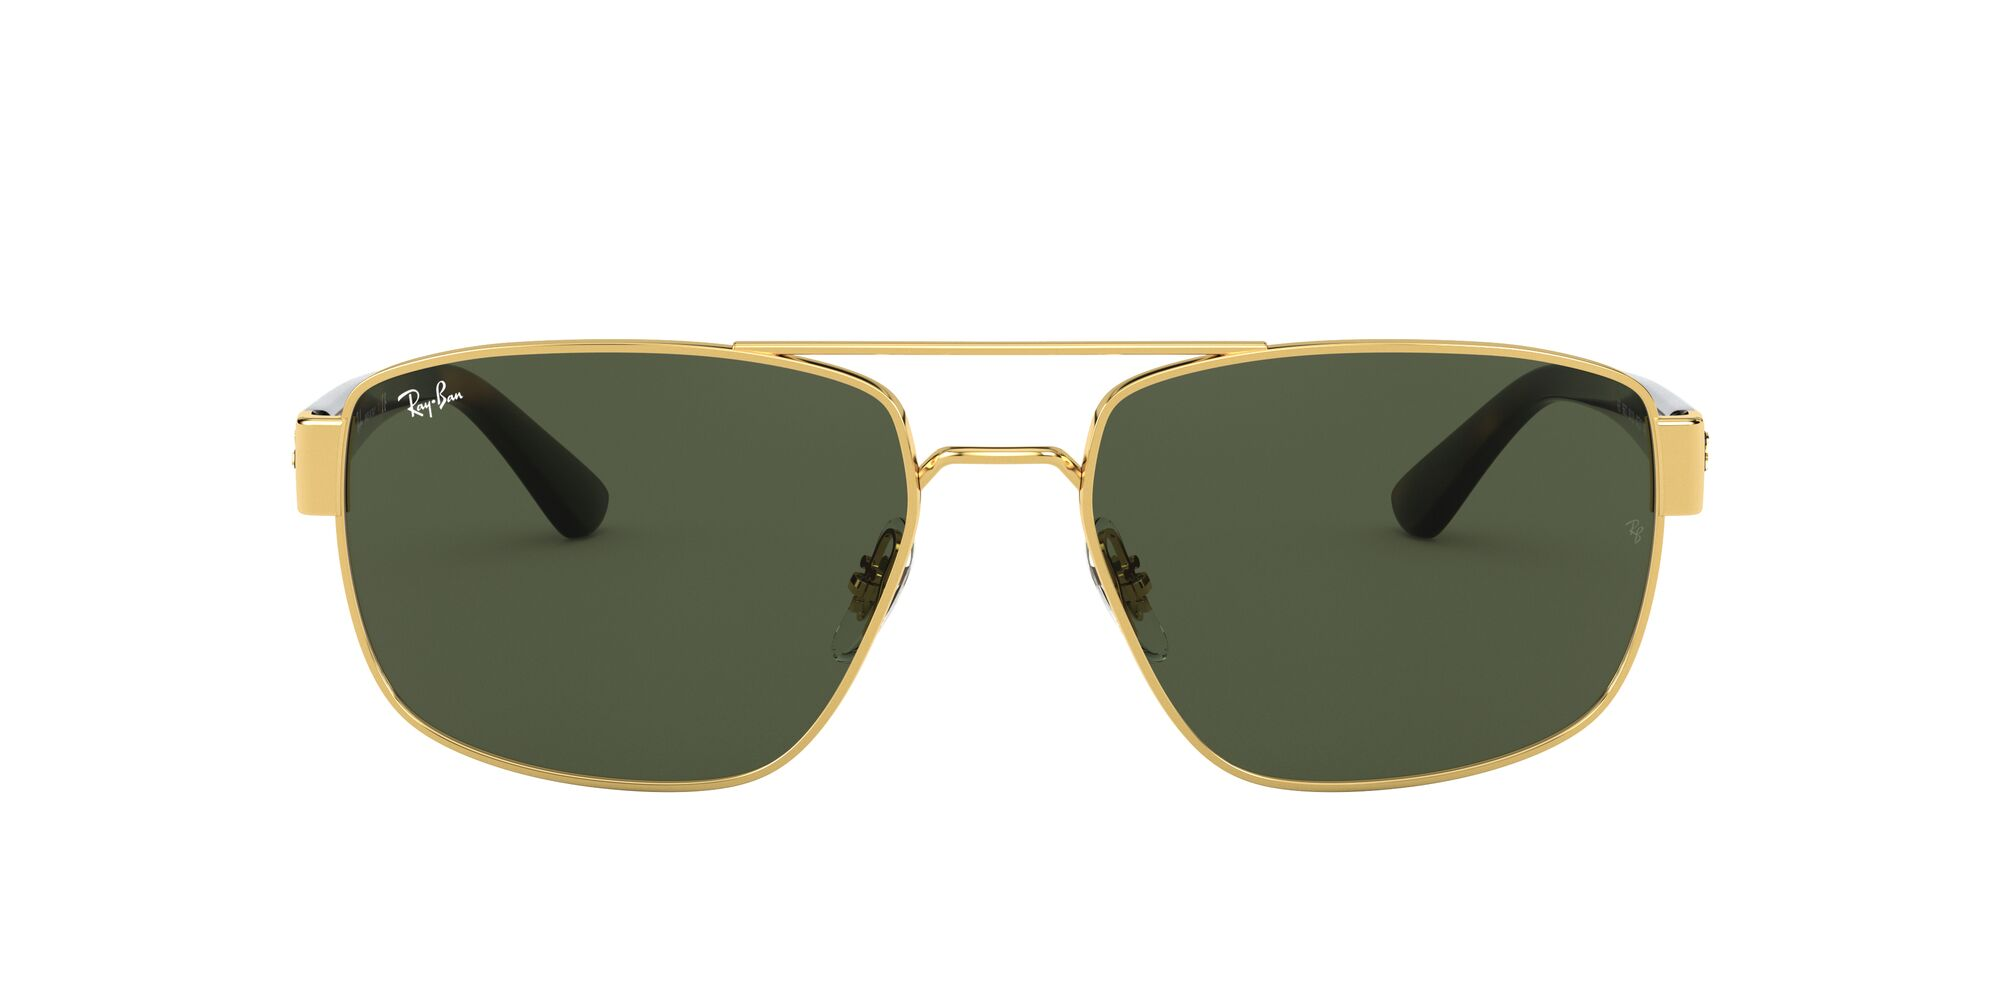 Front Ray-Ban Ray-Ban 0RB3663 001/31 59/17 Goud/Groen